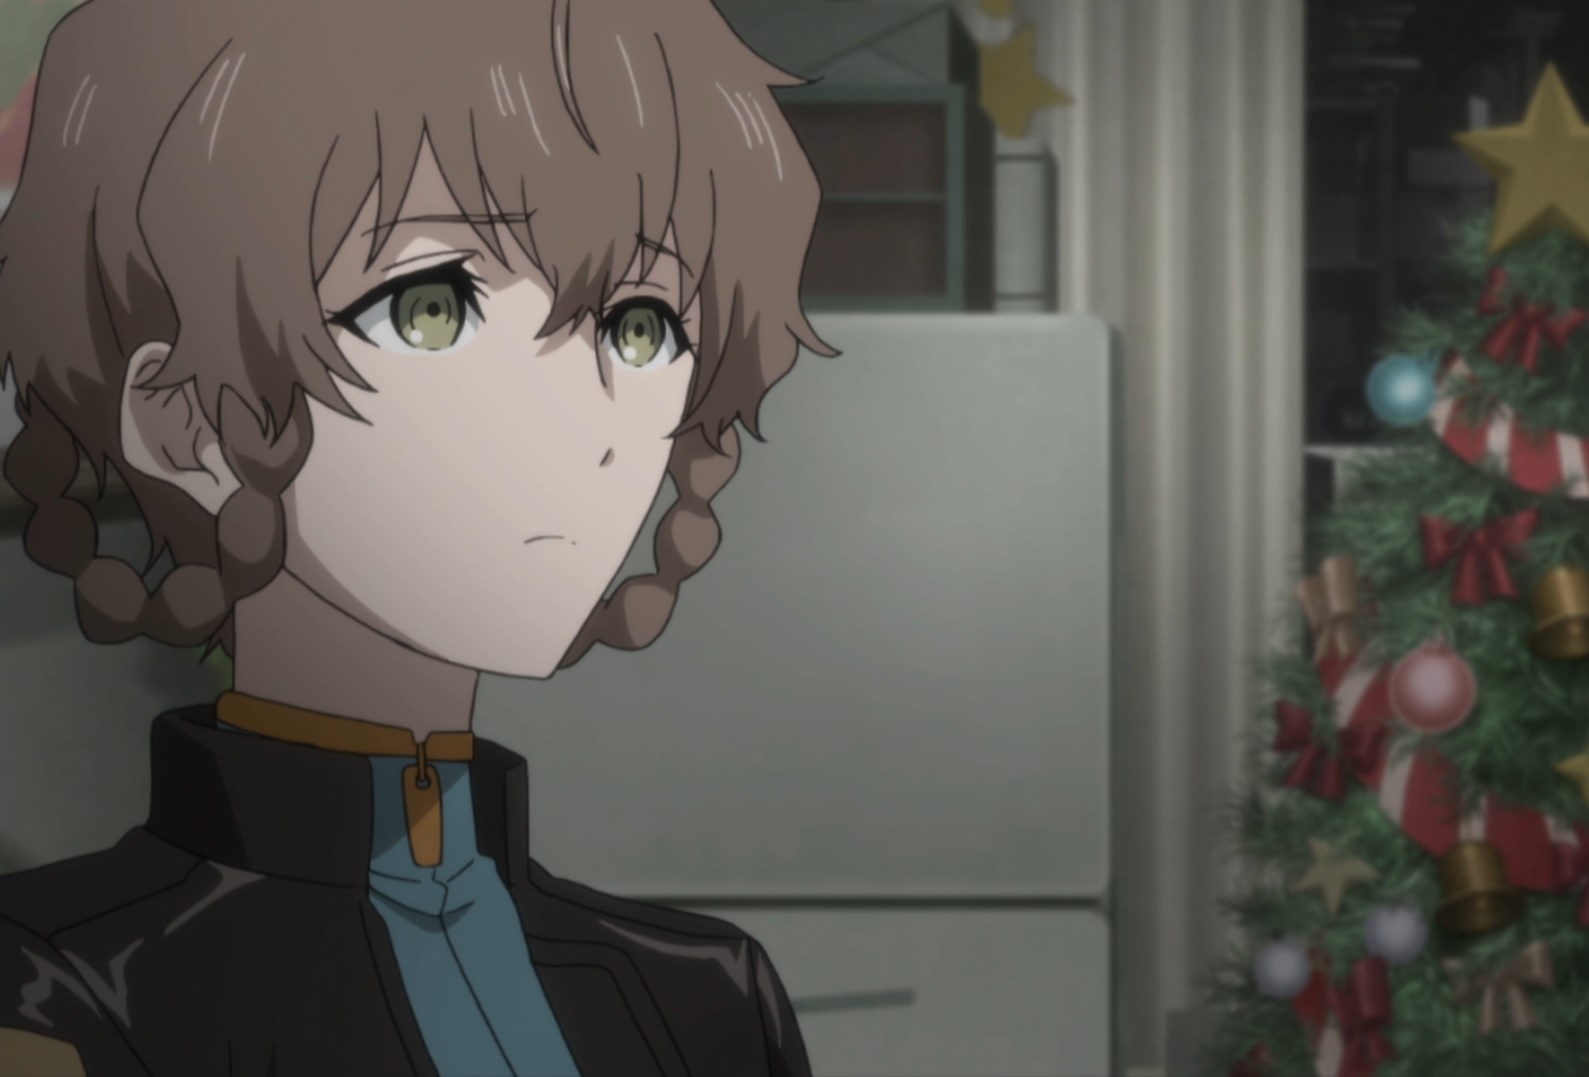 steins;gate 0 episode 4 suzuha